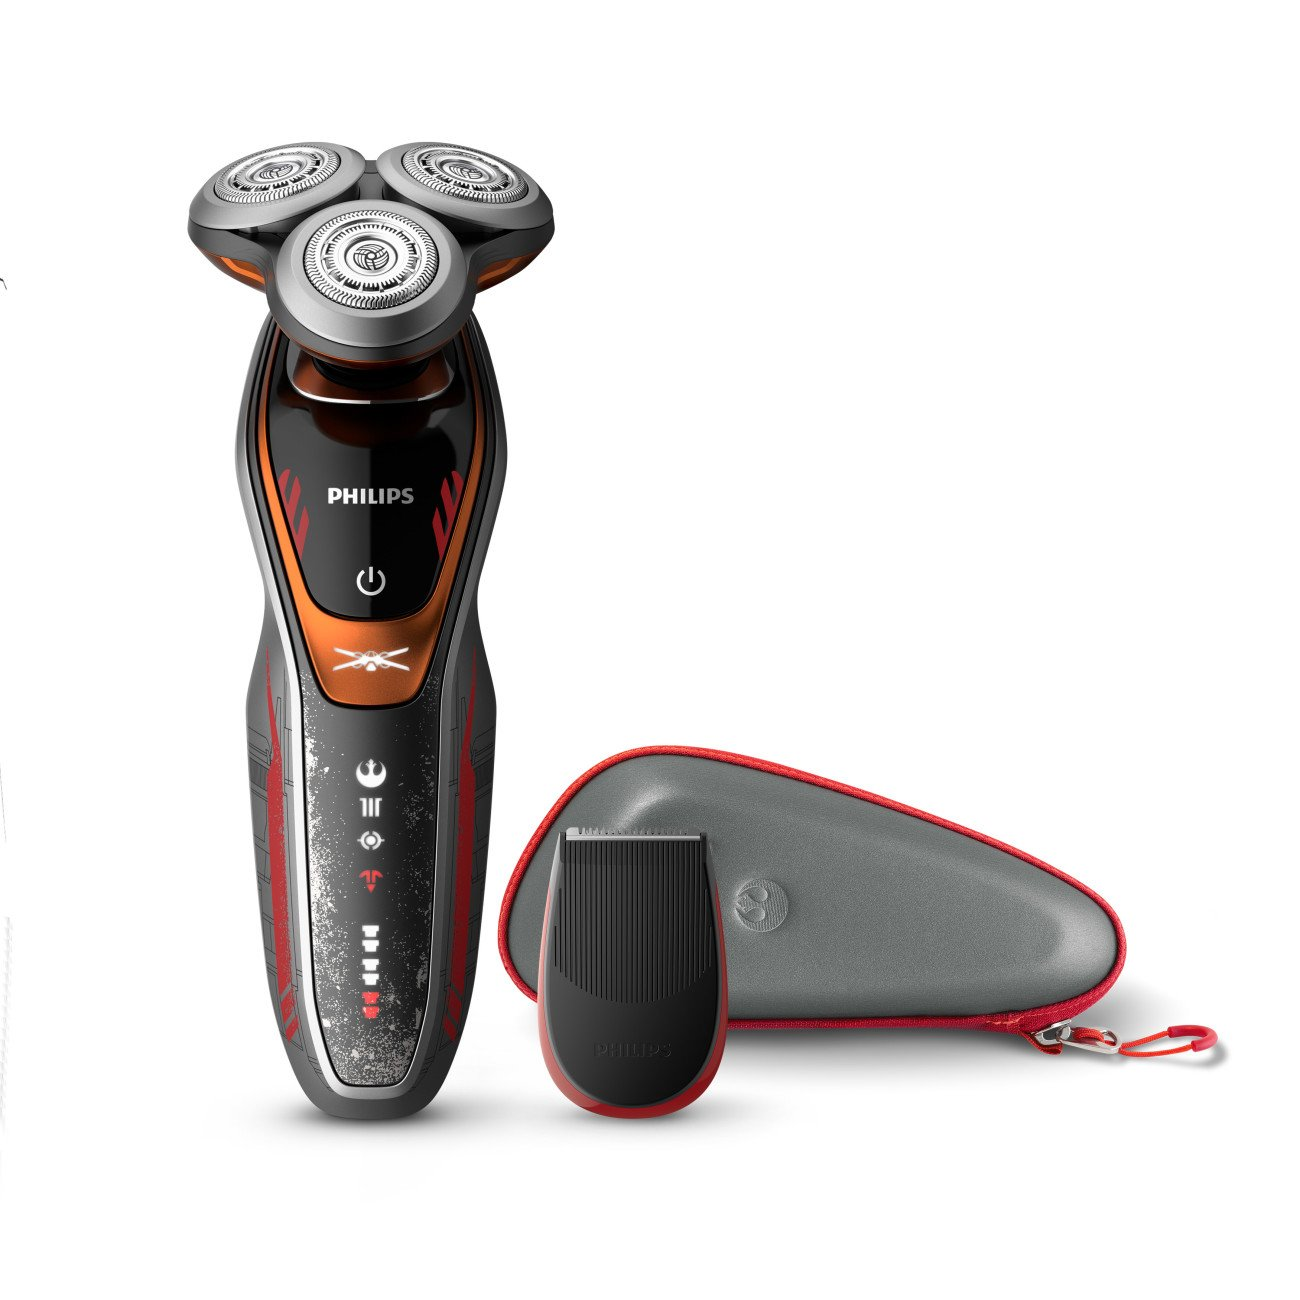 Philips Norelco Special Edition Star Wars Poe Wet & Dry Electric Shaver, SW6700/91, with Turbo+ mode and Precision Trimmer by Philips Norelco